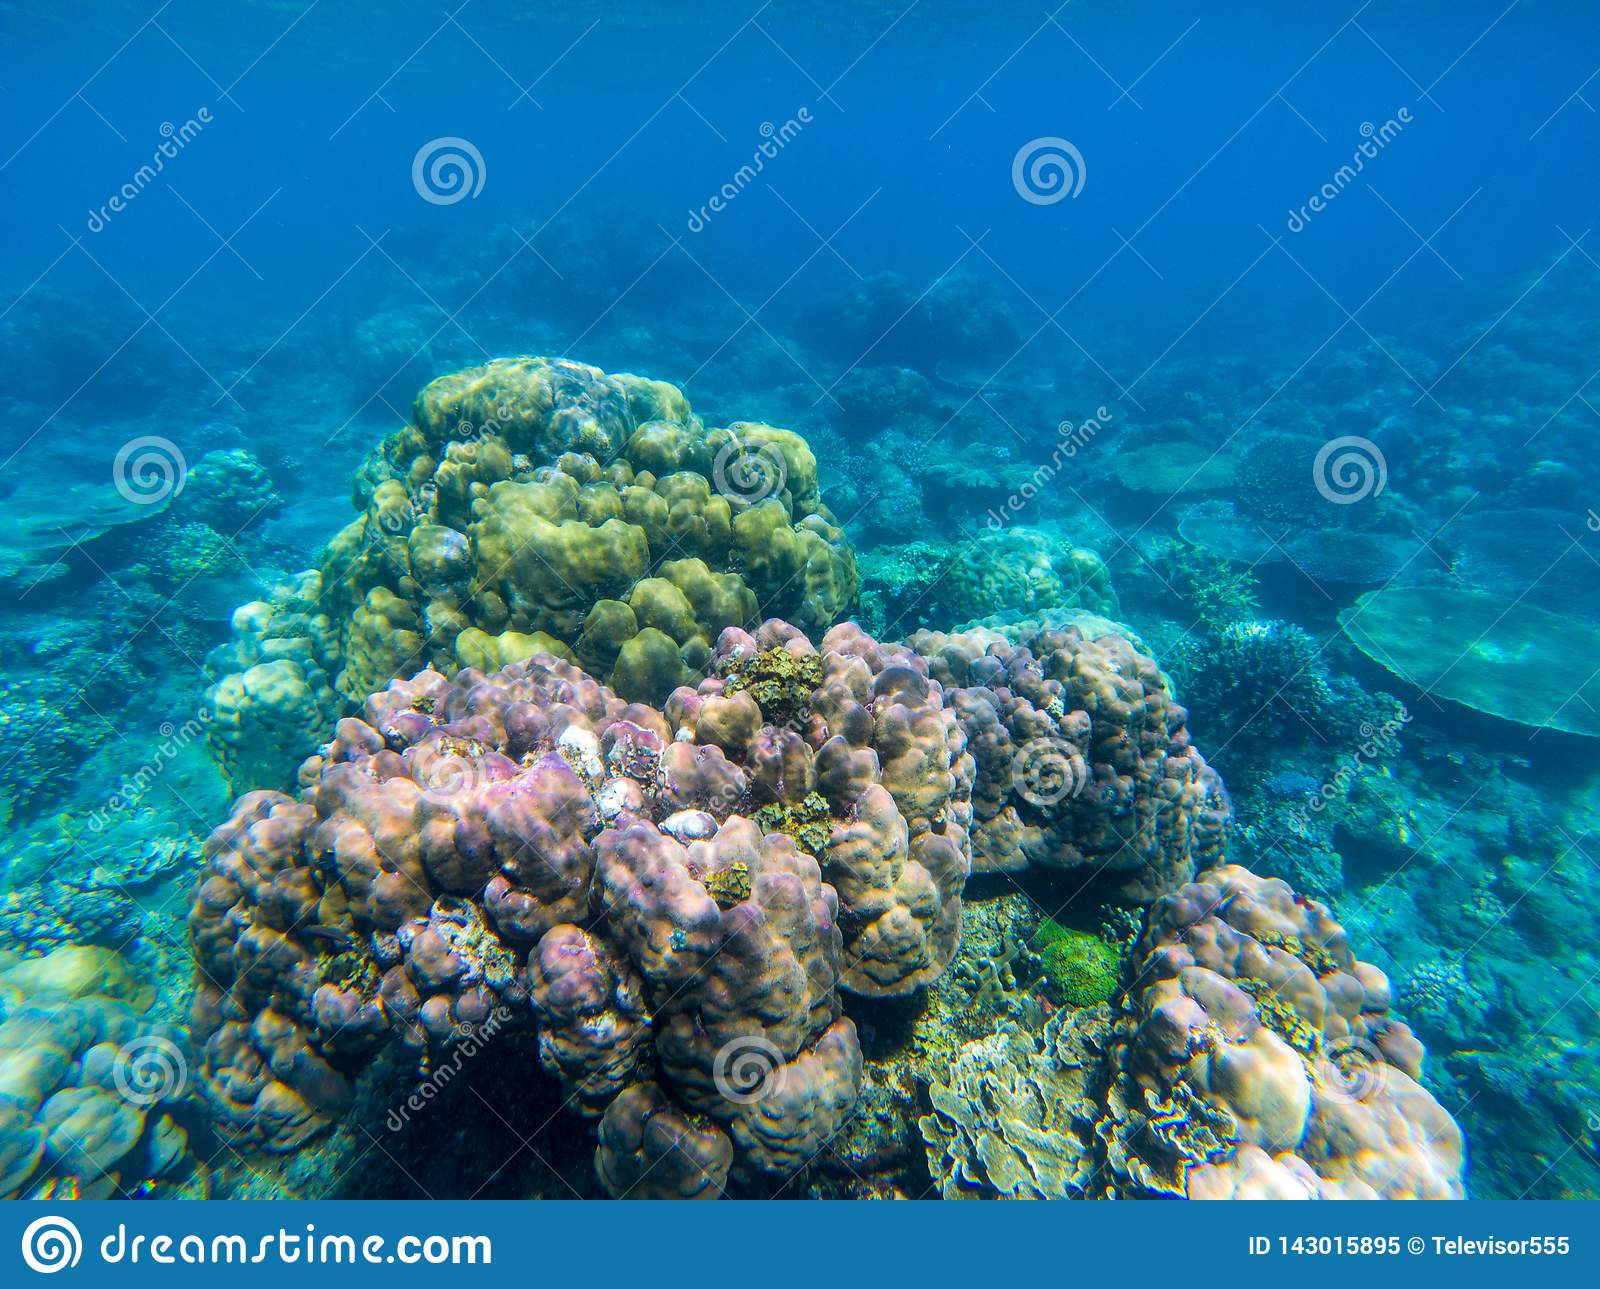 Undersea landscape with colorful coral reef. Tropical sea shore animal underwater photo. Seabottom perspective landscape